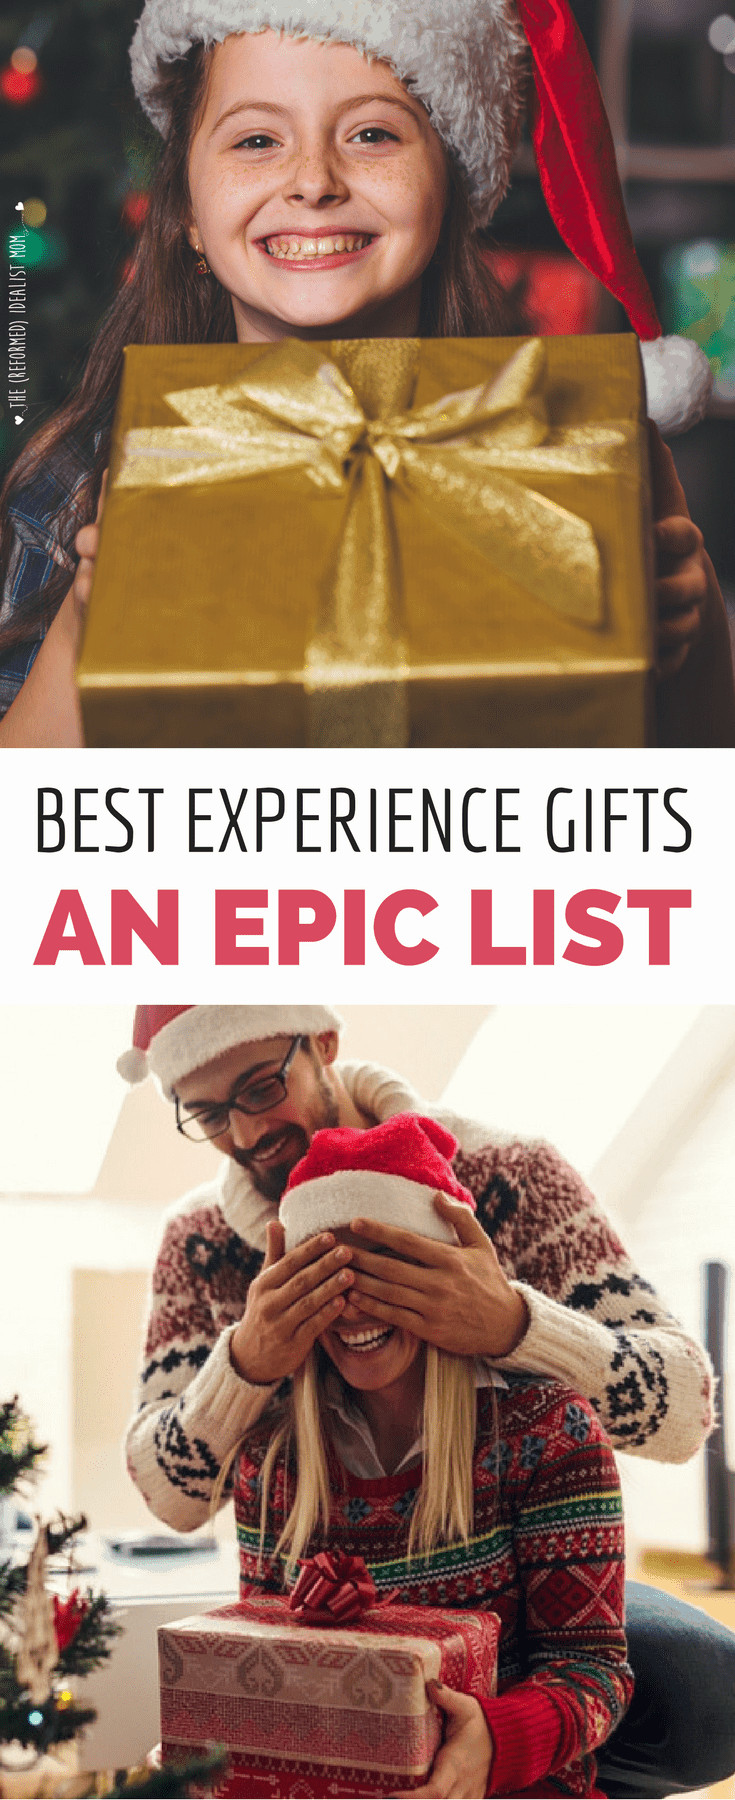 Best ideas about Experience Gift Ideas For Him . Save or Pin The Ultimate Most Epic List of the Best Experience Gift Now.